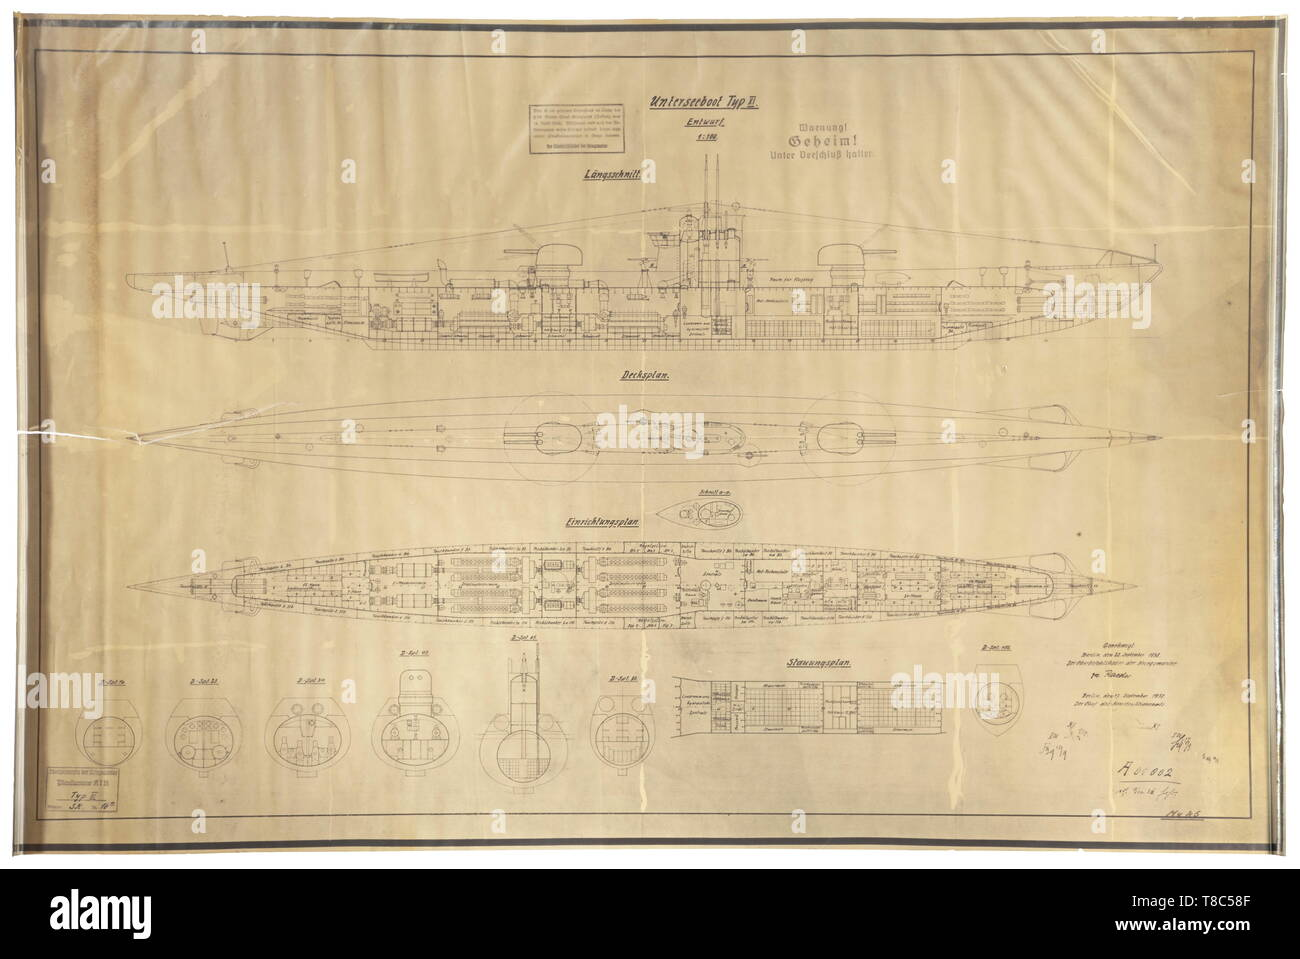 A type XI submarine - a construction drawing with 'Secret' classification for this non-implemented U-Boat cruiser Design in 1:100 scale on transparent paper with longitudinal section, deck, facility and stowage plans as well as seven segment cross sections. At lower right is the approval by Raeder as Kriegsmarine Supreme Commander dated 20 September 1938, and the 'Geheim' (secret) classification with misuse warning. Dimensions 87 x 130 cm, rolled, edge tears. Of great rarity. The U-Boat Type XI was designed as a U-boat cruiser with heavier artillery for use in the Atlantic , Editorial-Use-Only - Stock Image